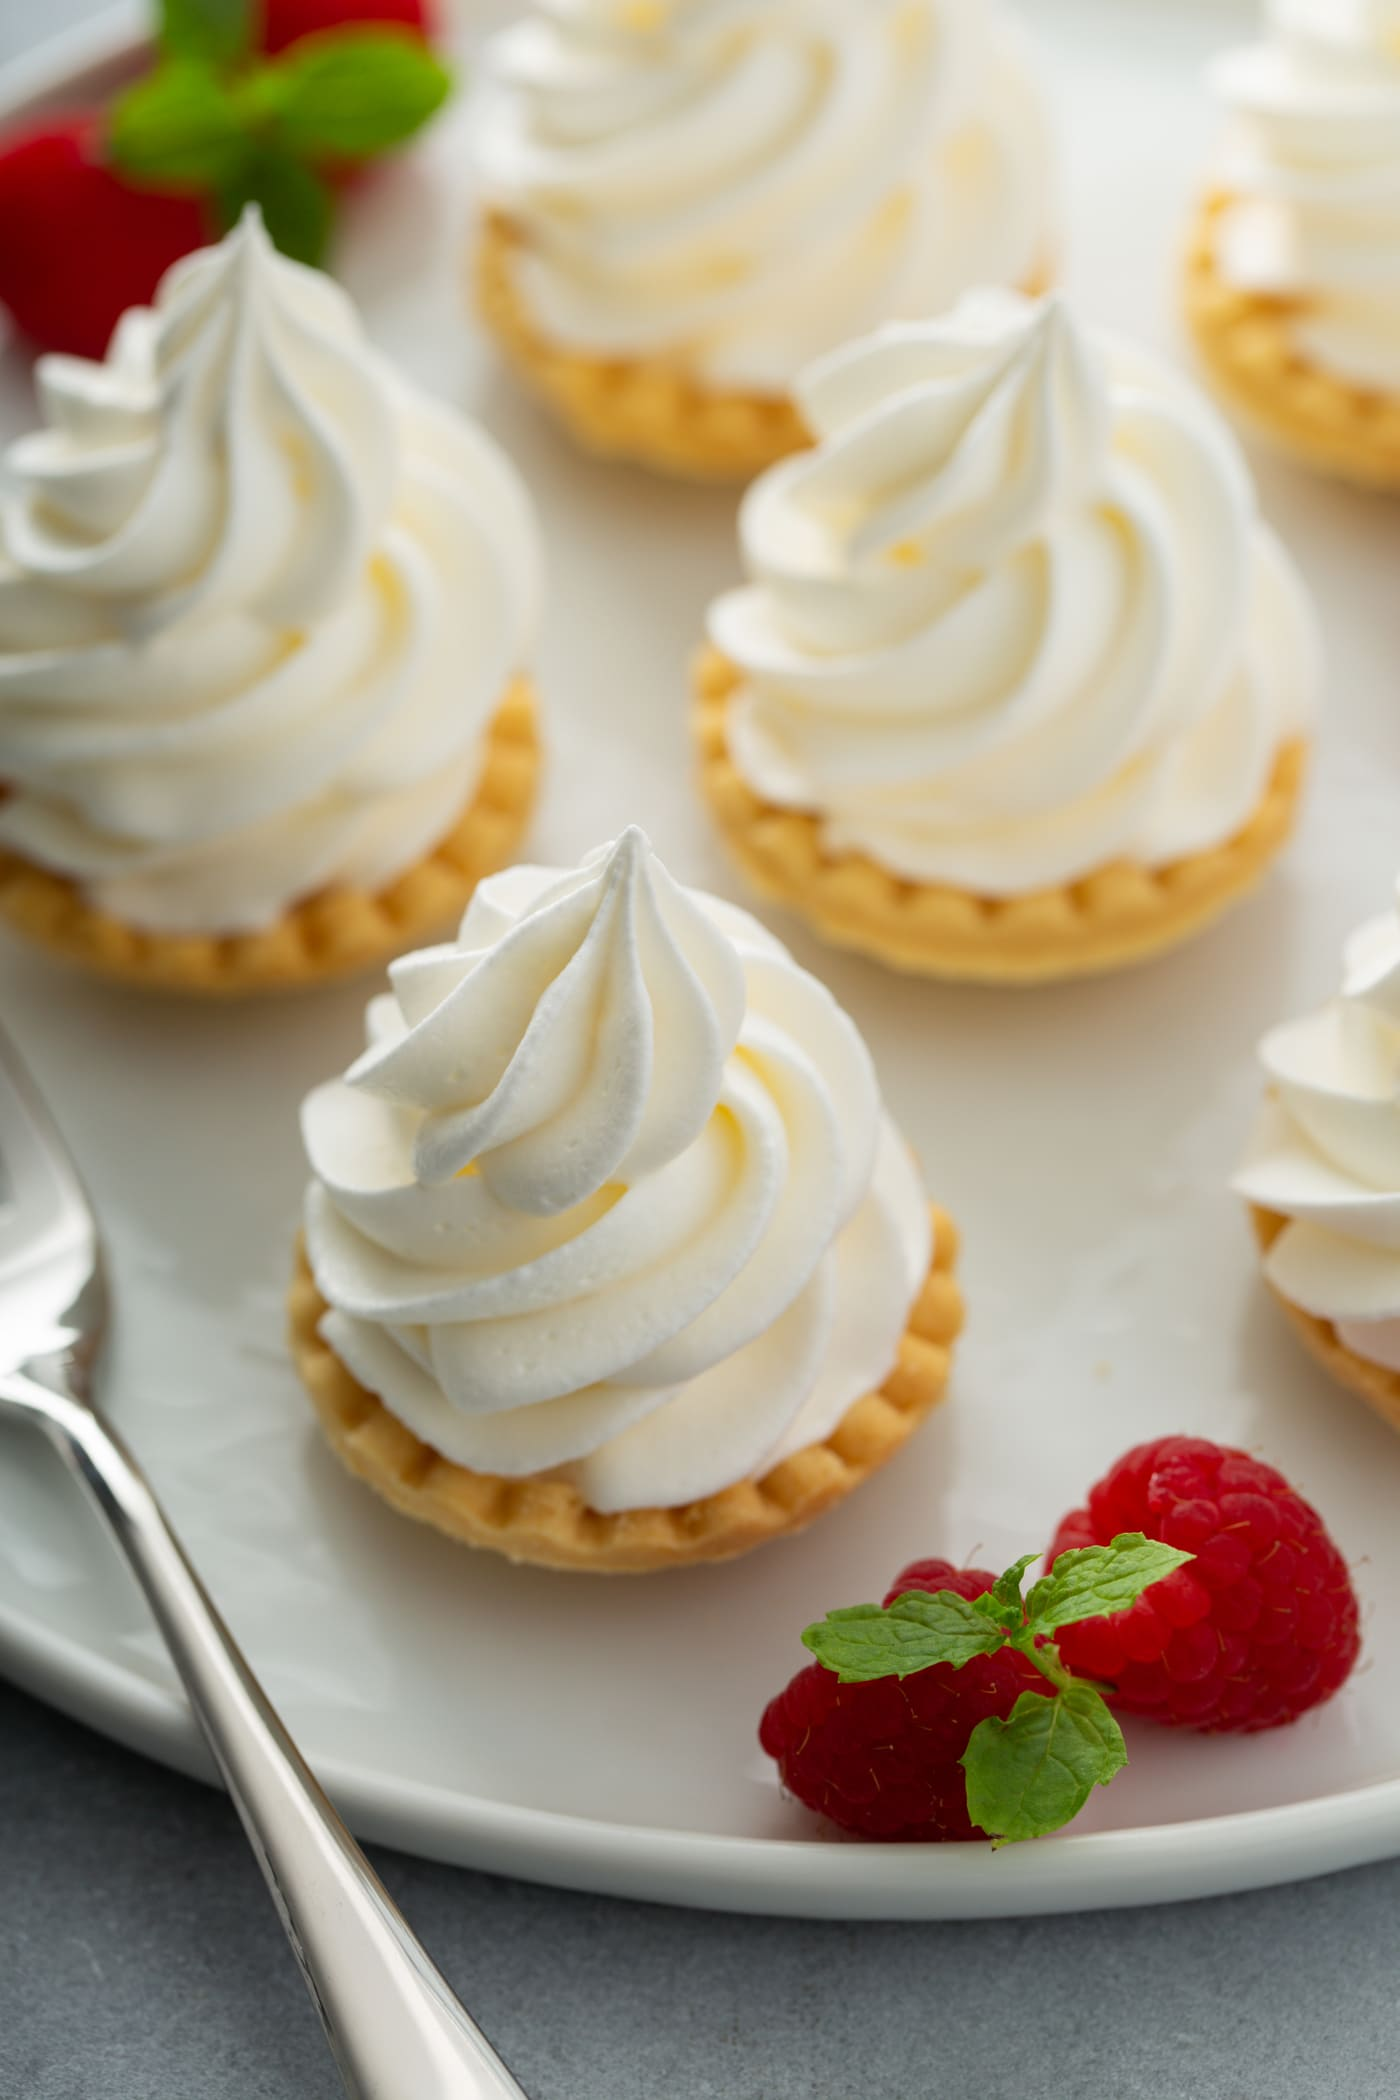 A few little tarts with whipped cream piped on top. There are a few raspberries next to the tarts.